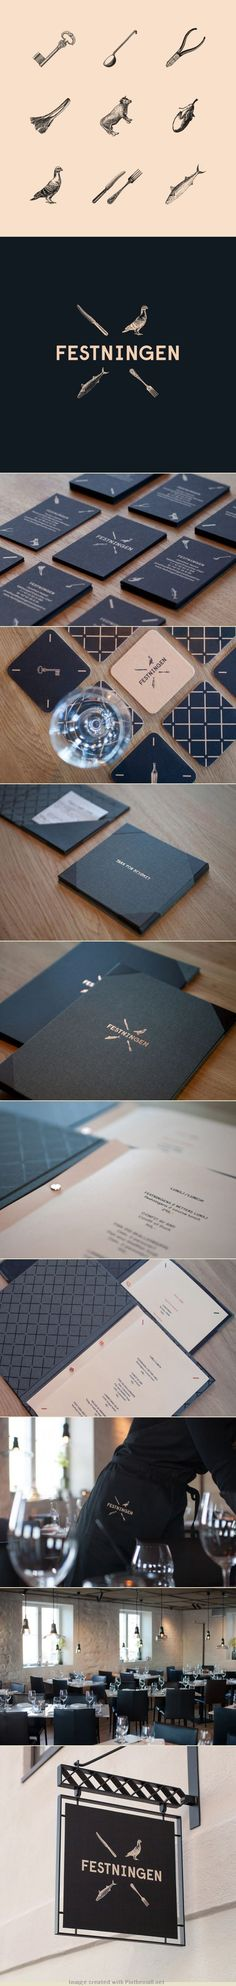 Festningen | by Uniform | #stationary #corporate #design #corporatedesign #identity #branding #marketing < repinned by www.BlickeDeeler.de | Take a look at www.LogoGestaltung-Hamburg.de